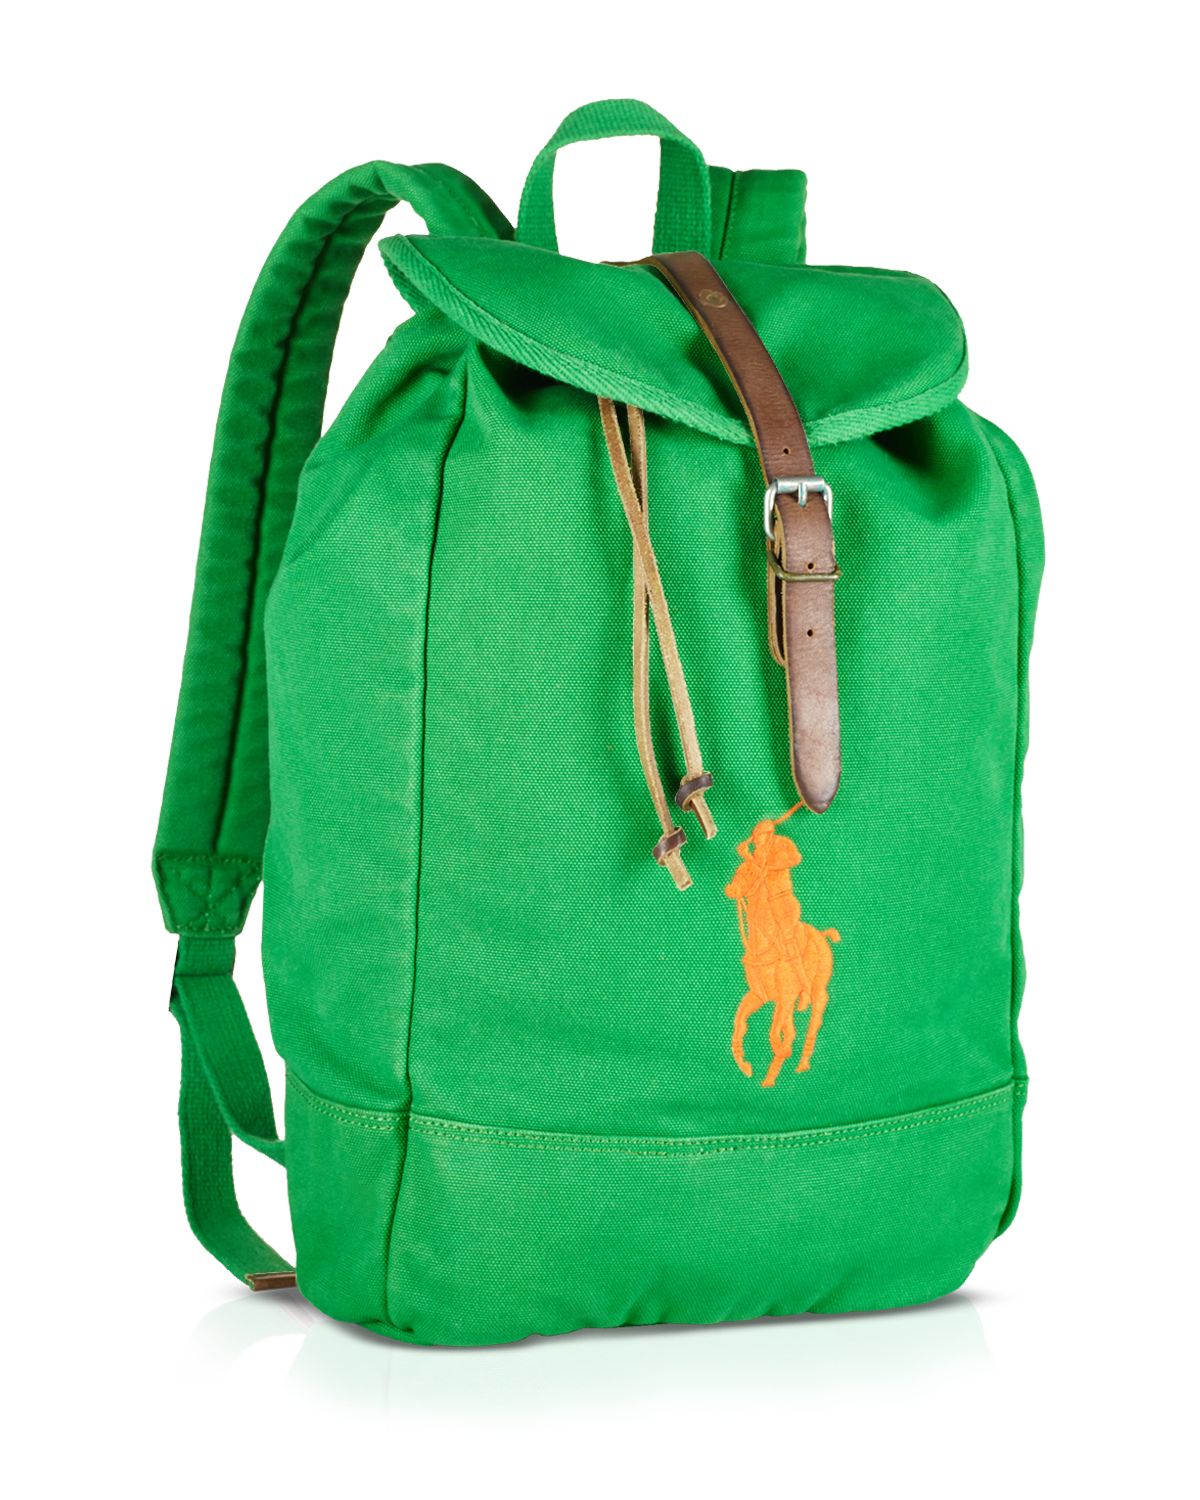 Lyst ralph lauren polo canvas backpack in green for men jpg 1200x1500 Polo  canvas backpack 39220cbc89493